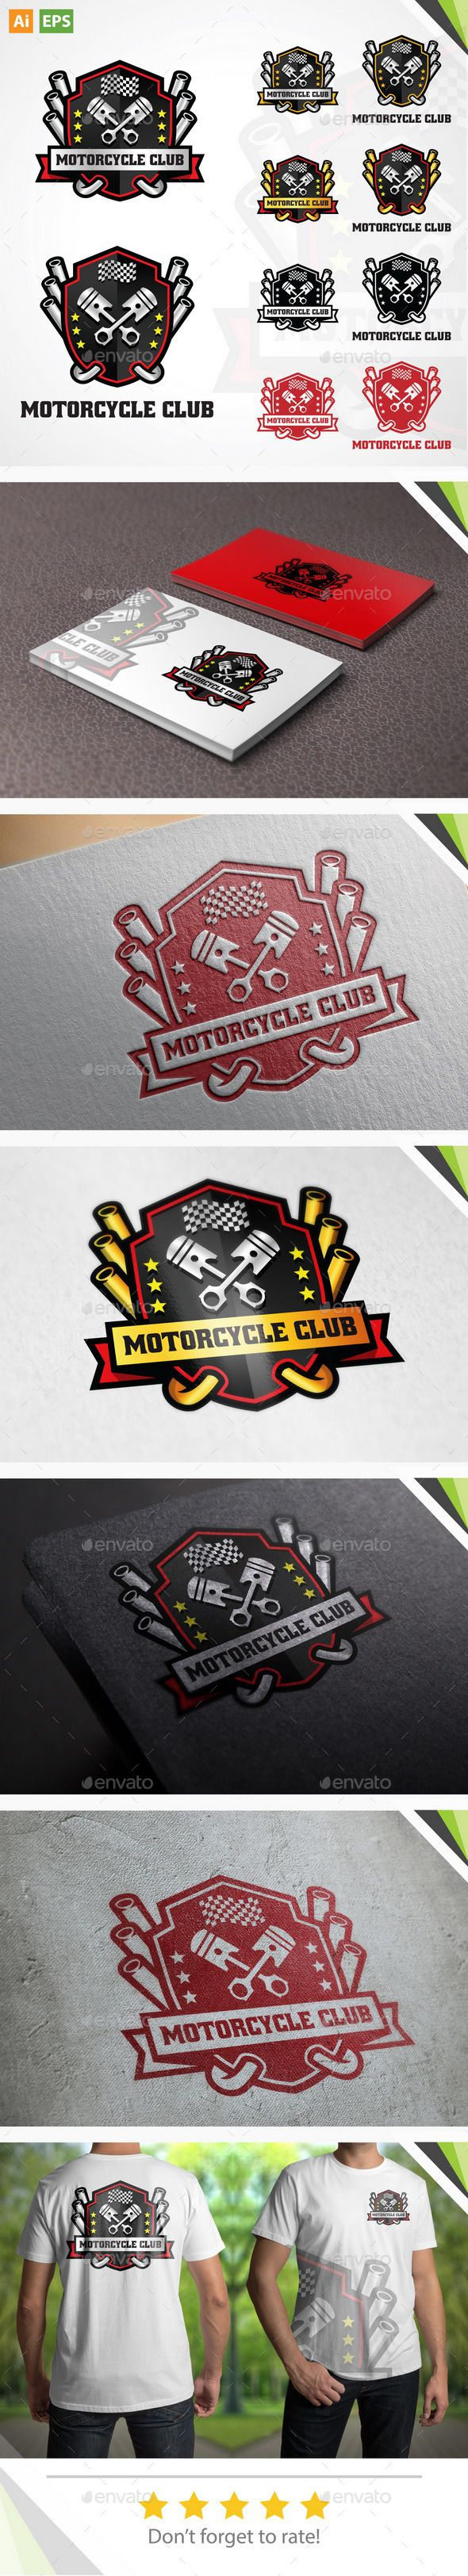 Motorcycle Club Logo — Vector EPS #motorcycle club logo #motorcycle club • Available here → https://graphicriver.net/item/motorcycle-club-logo/11179296?ref=pxcr